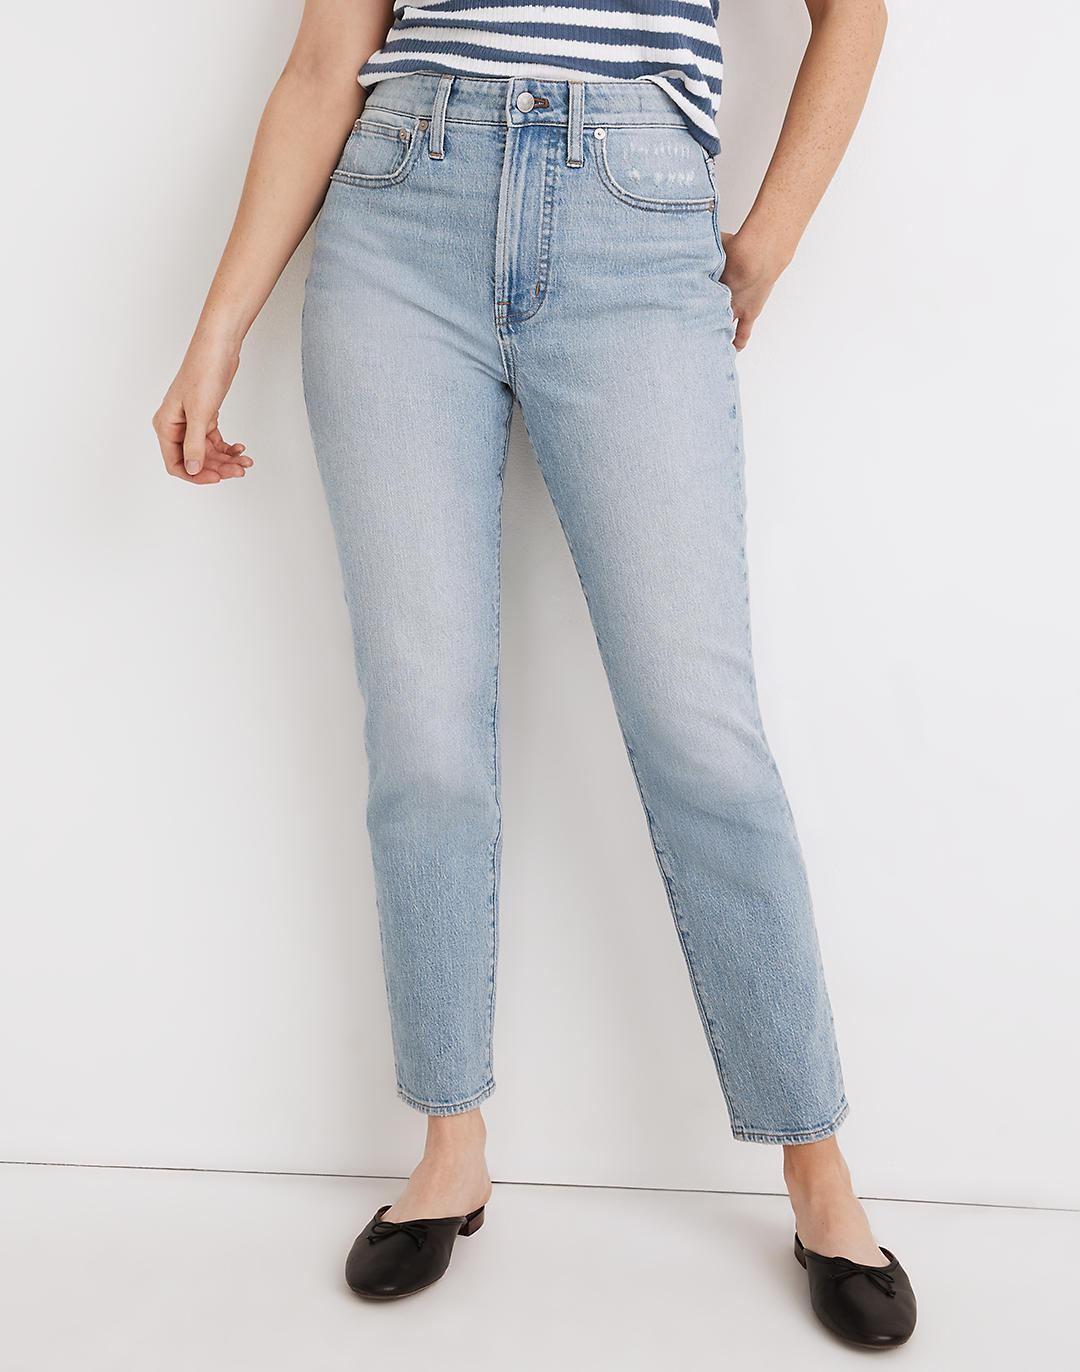 The Curvy Perfect Vintage Jean in Fiore Wash 3